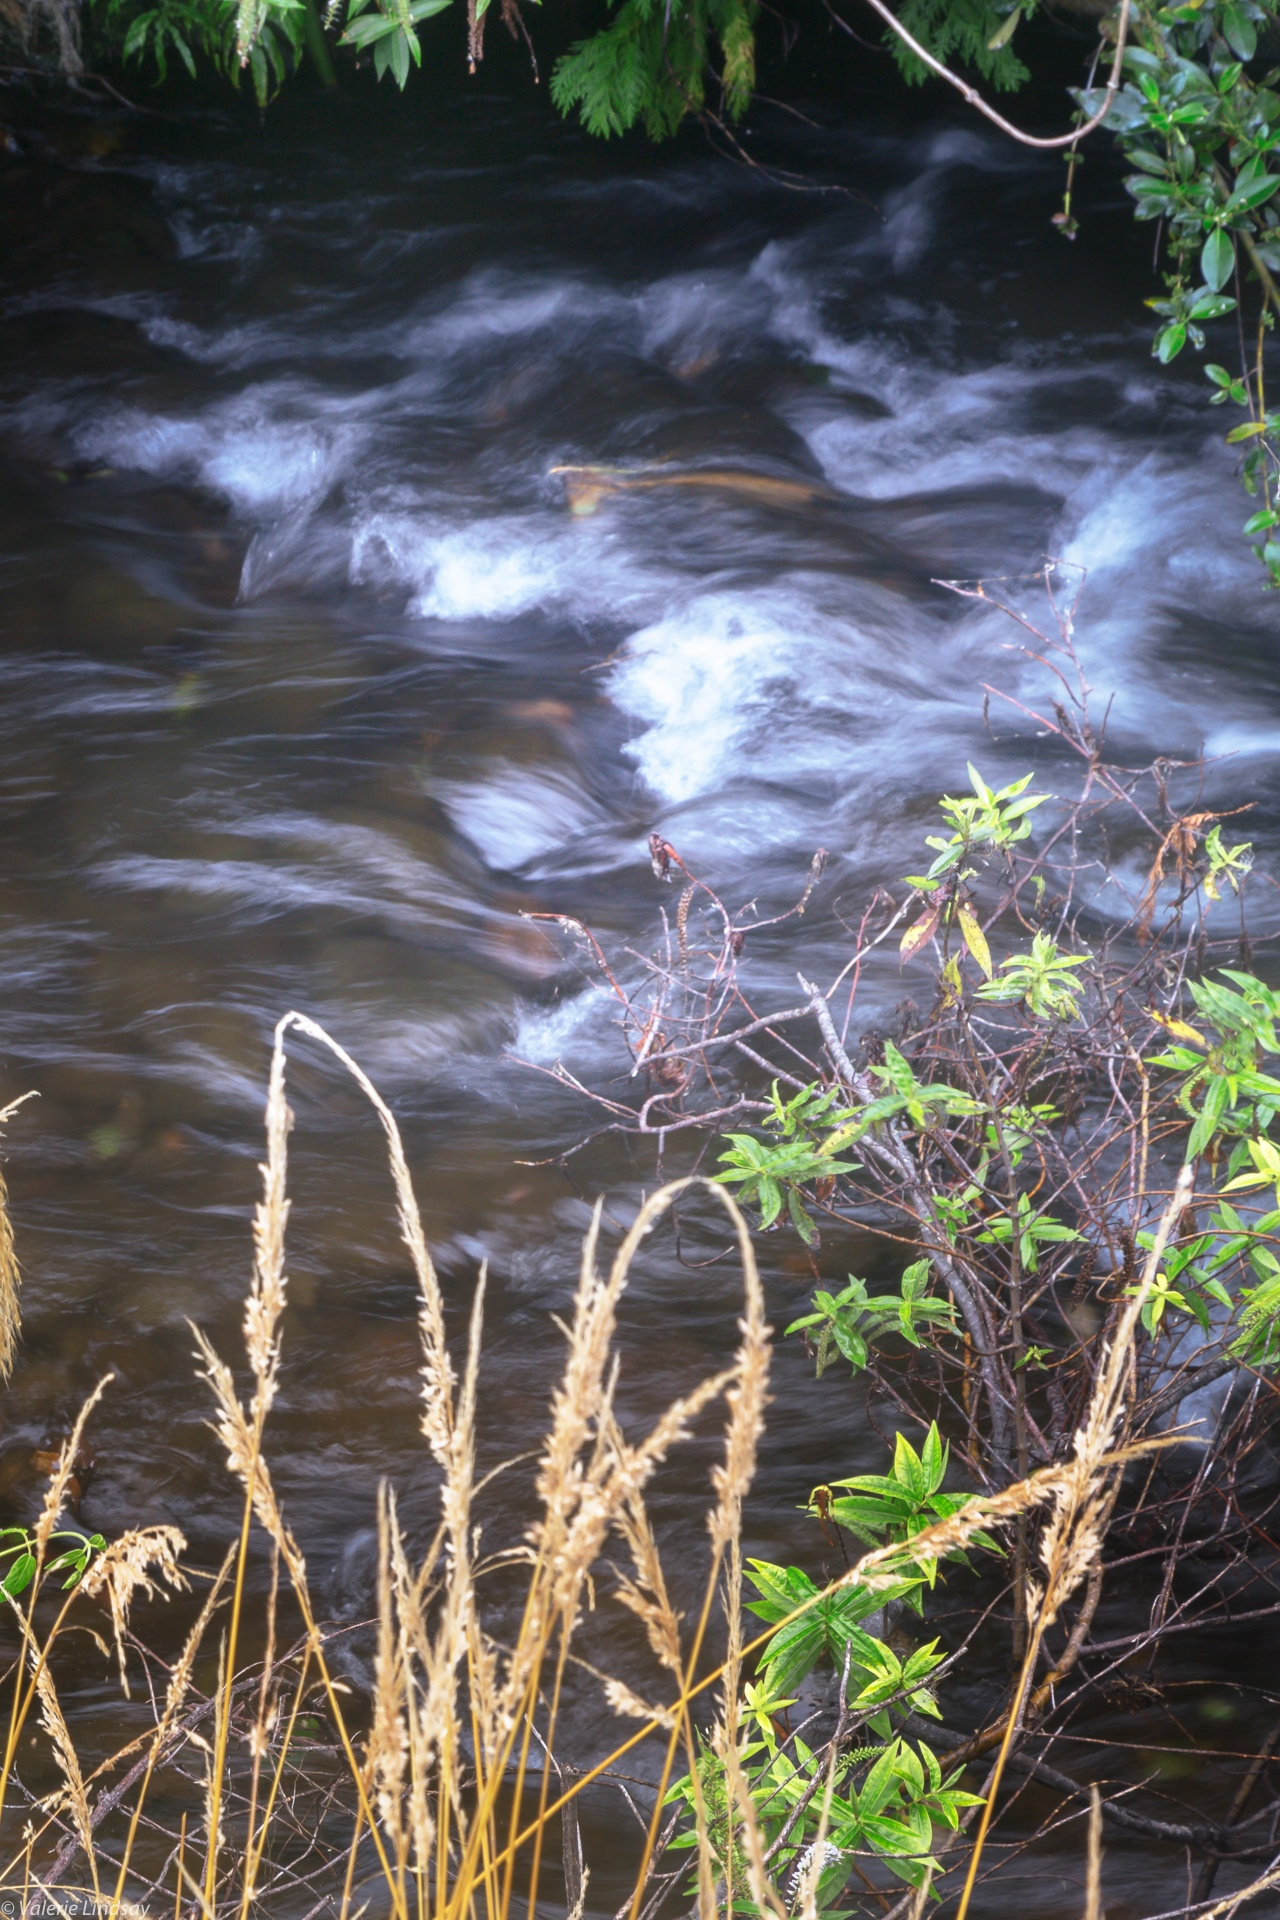 Silky waters of a fast-moving stream